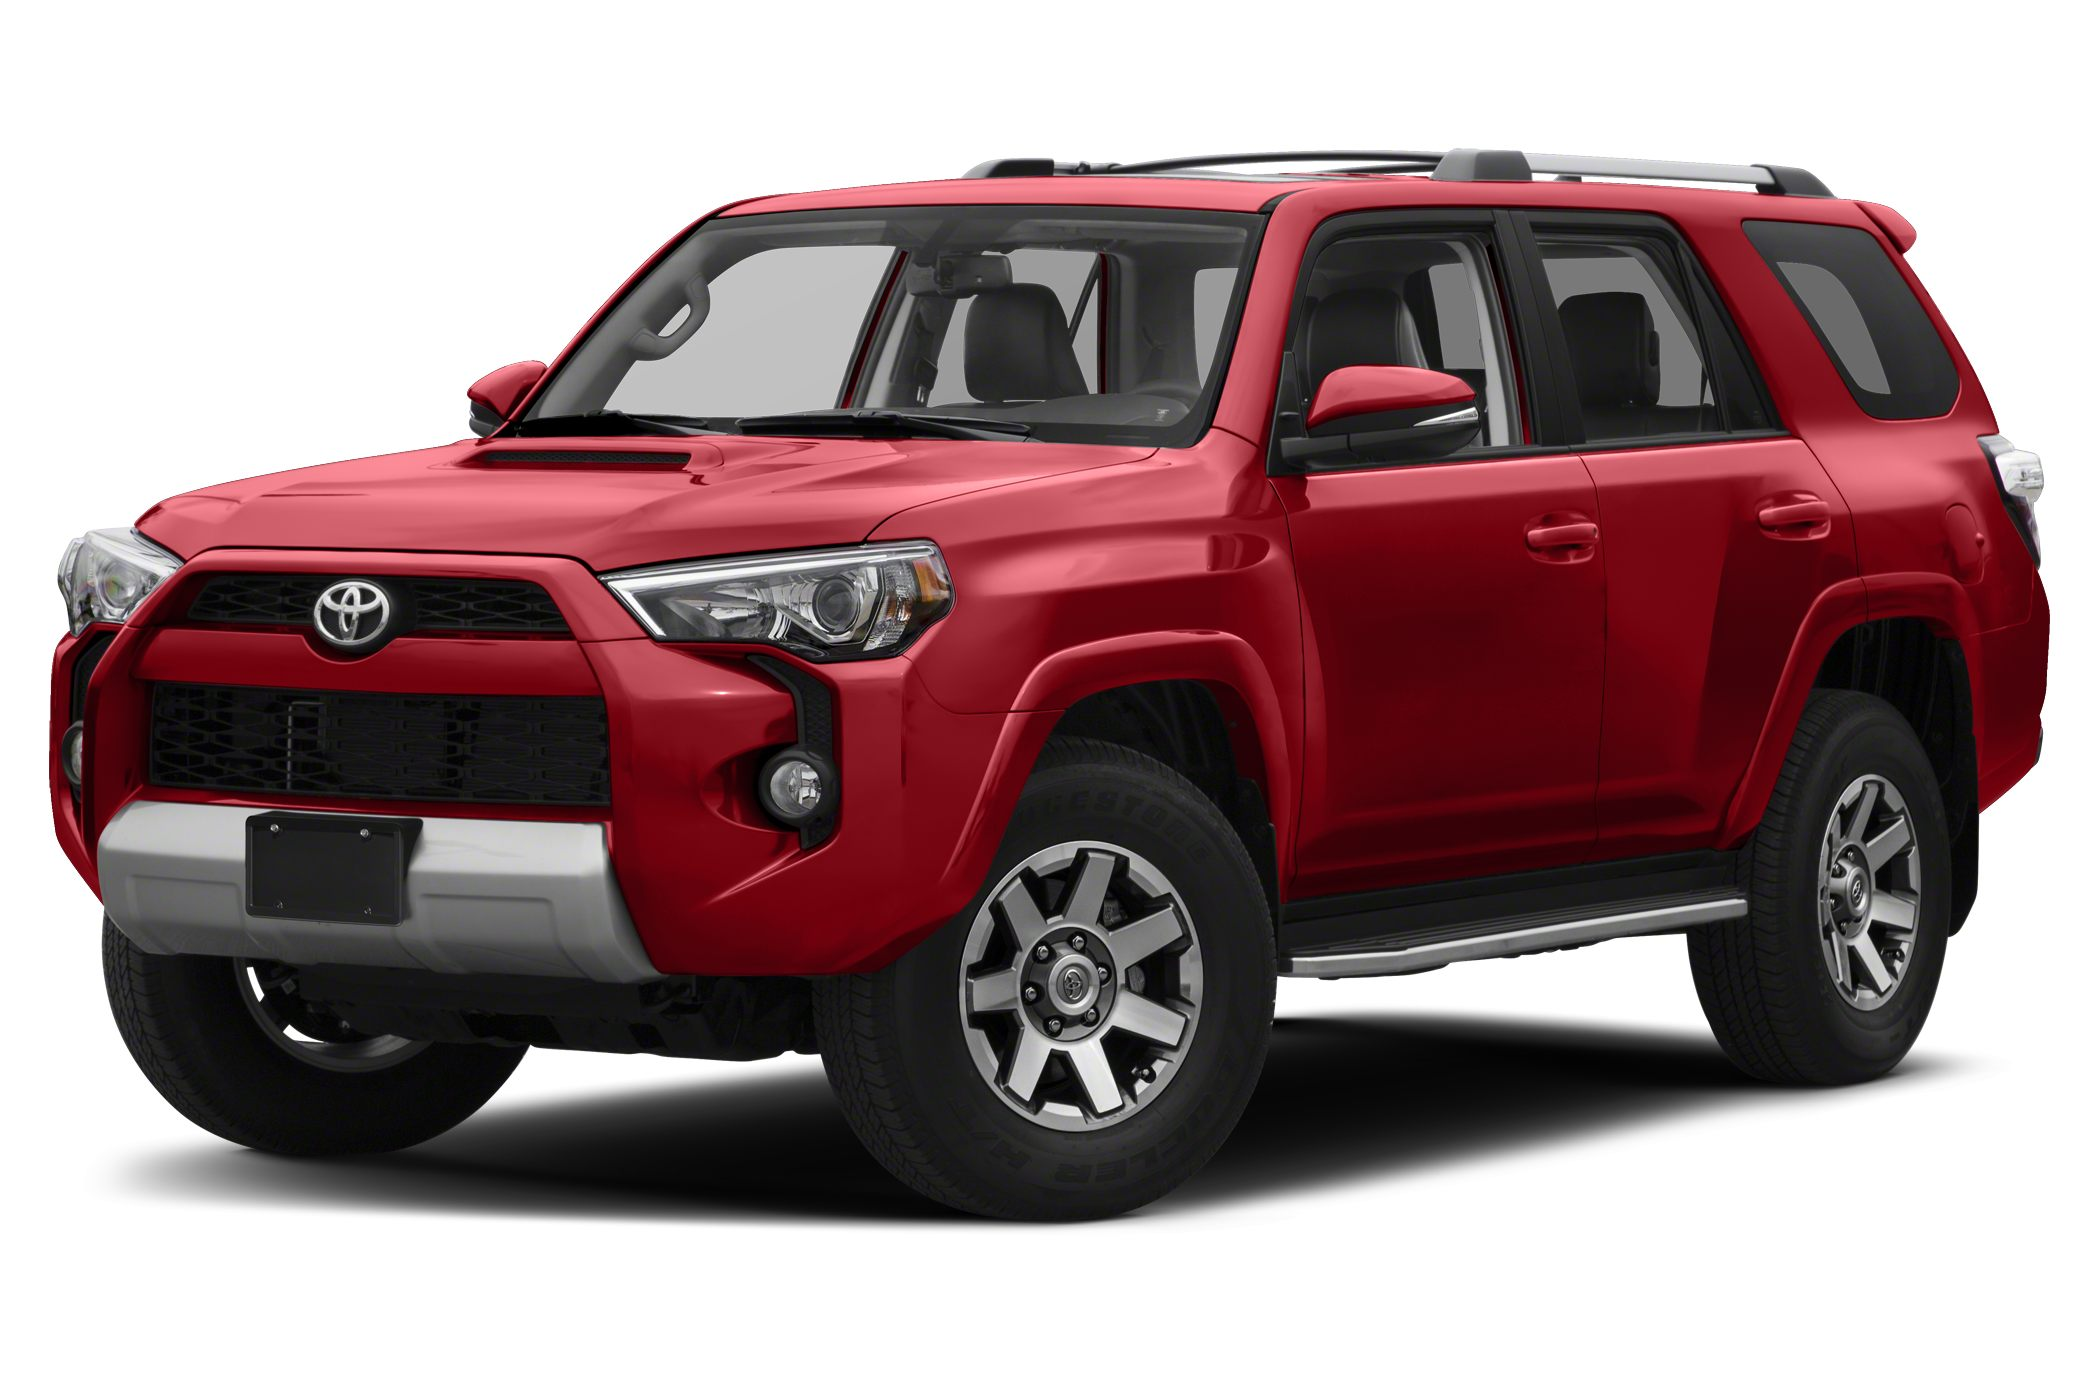 2016 Toyota 4Runner Trail Introducing the 2016 Toyota 4Runner A comfortable ride in a go-anywhere